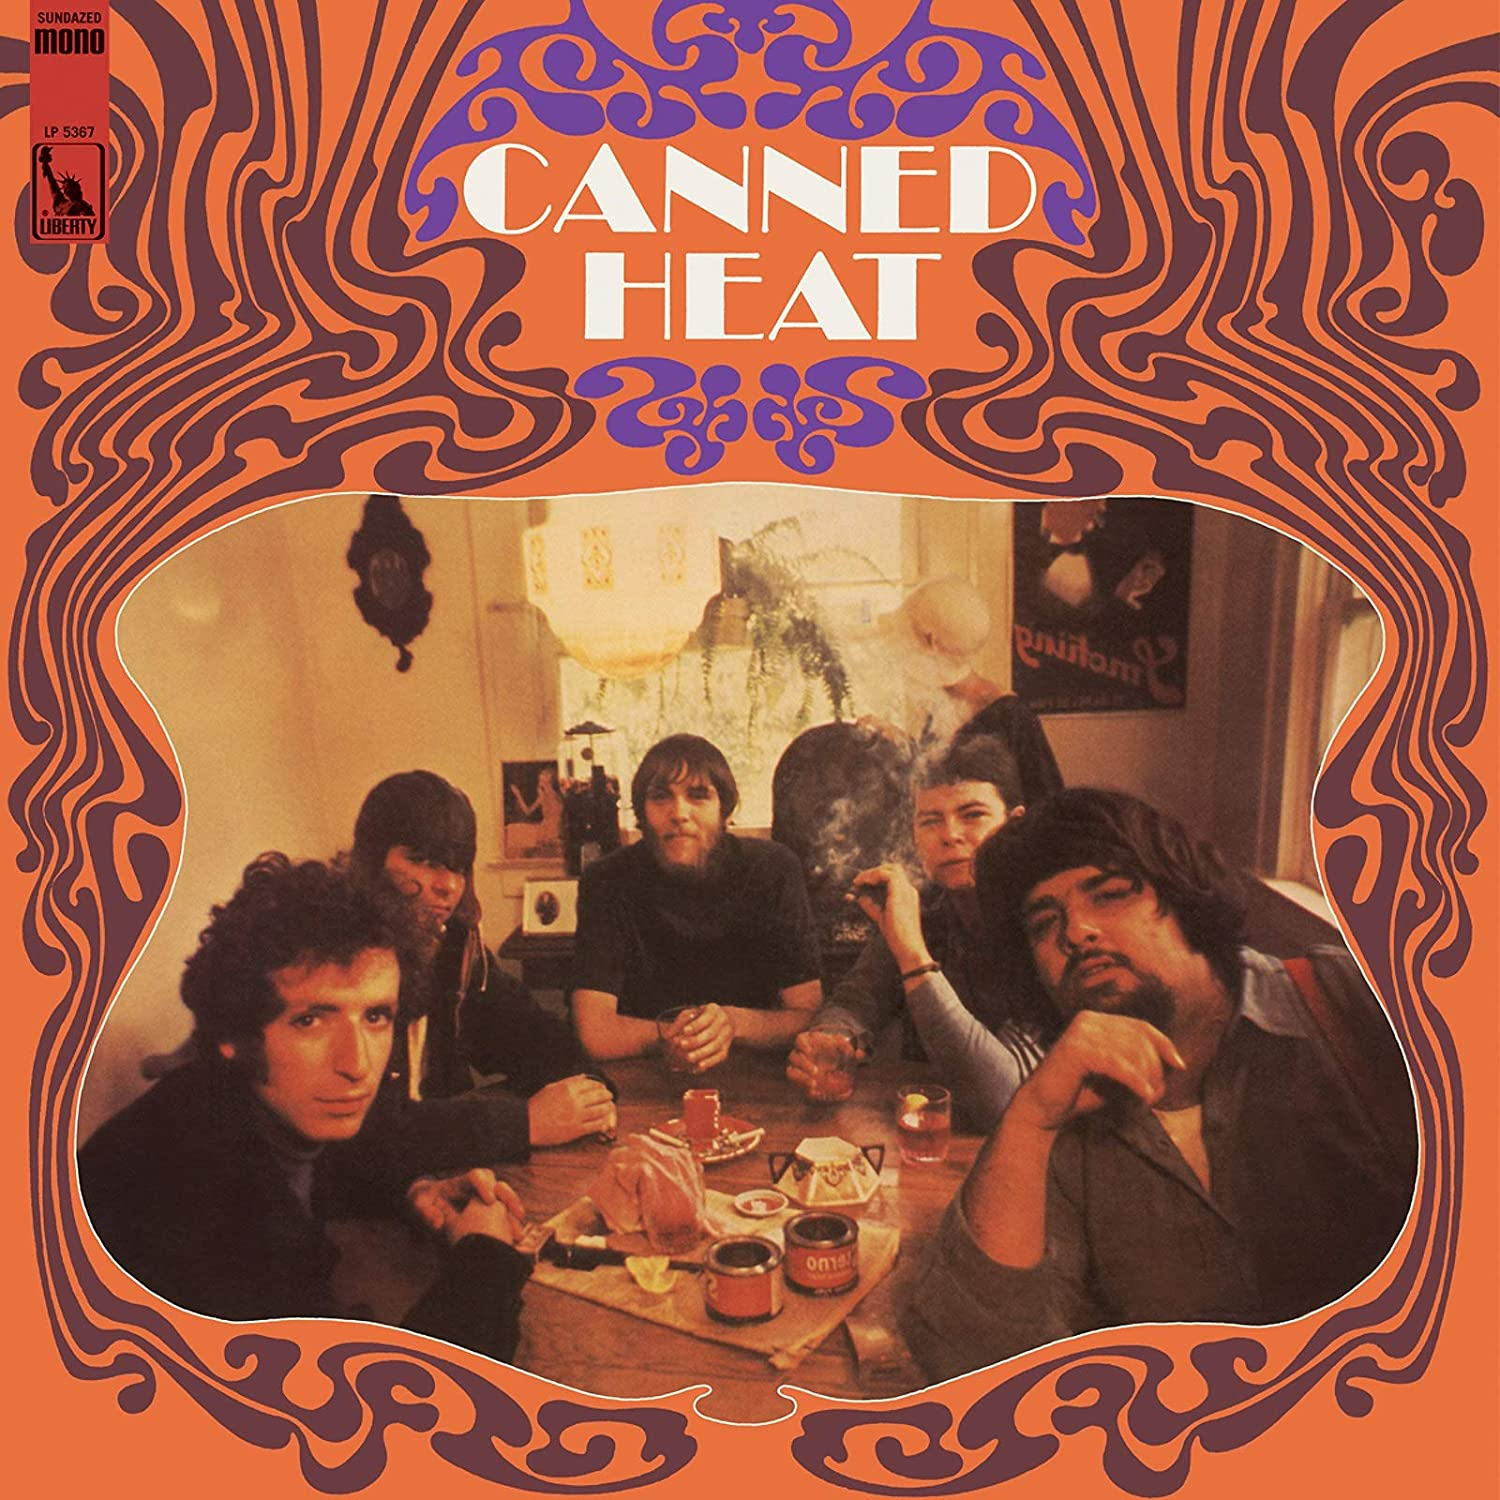 Canned Heat/Canned Heat (Gold Vinyl) [LP]